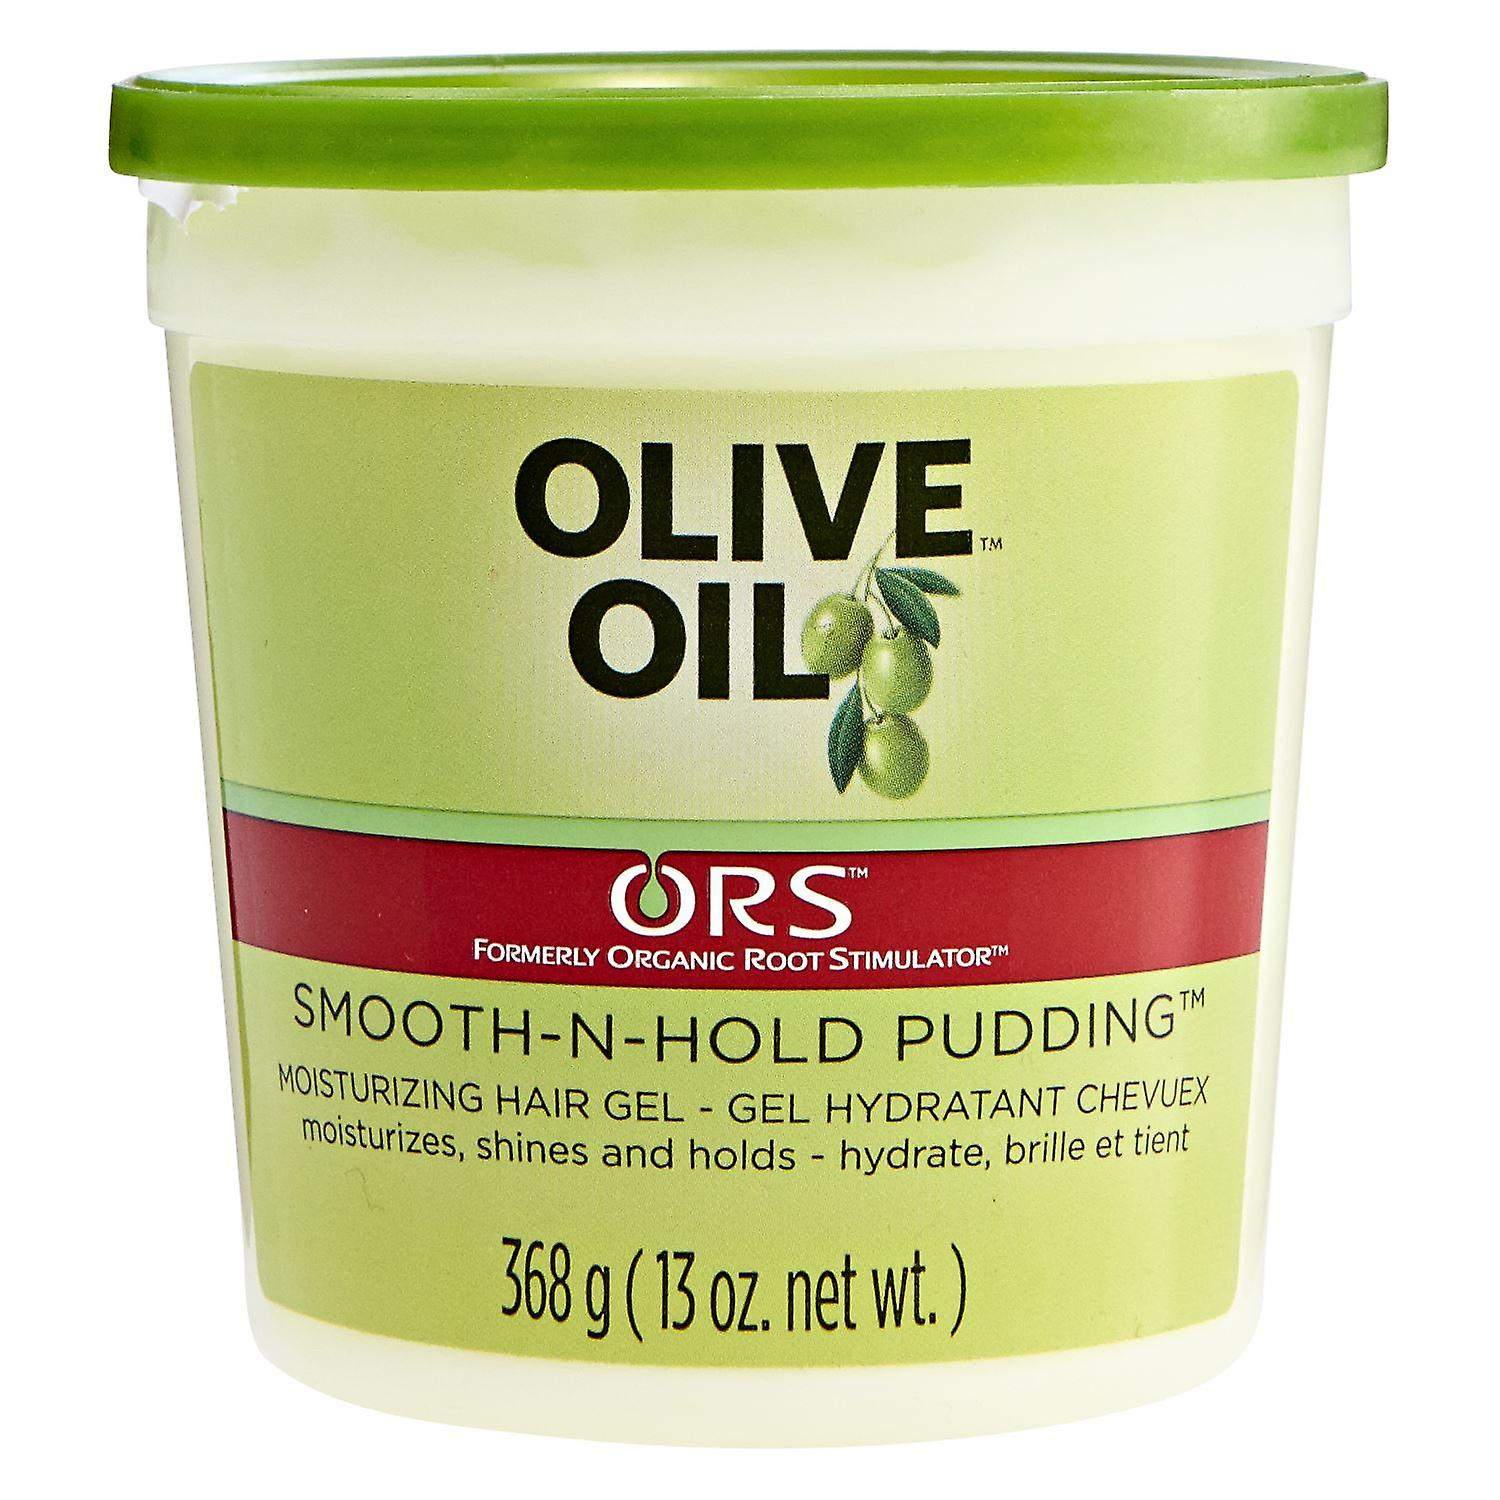 ORS Organic Root Stimulator Olive Oil Smooth n Hold Pudding 13oz